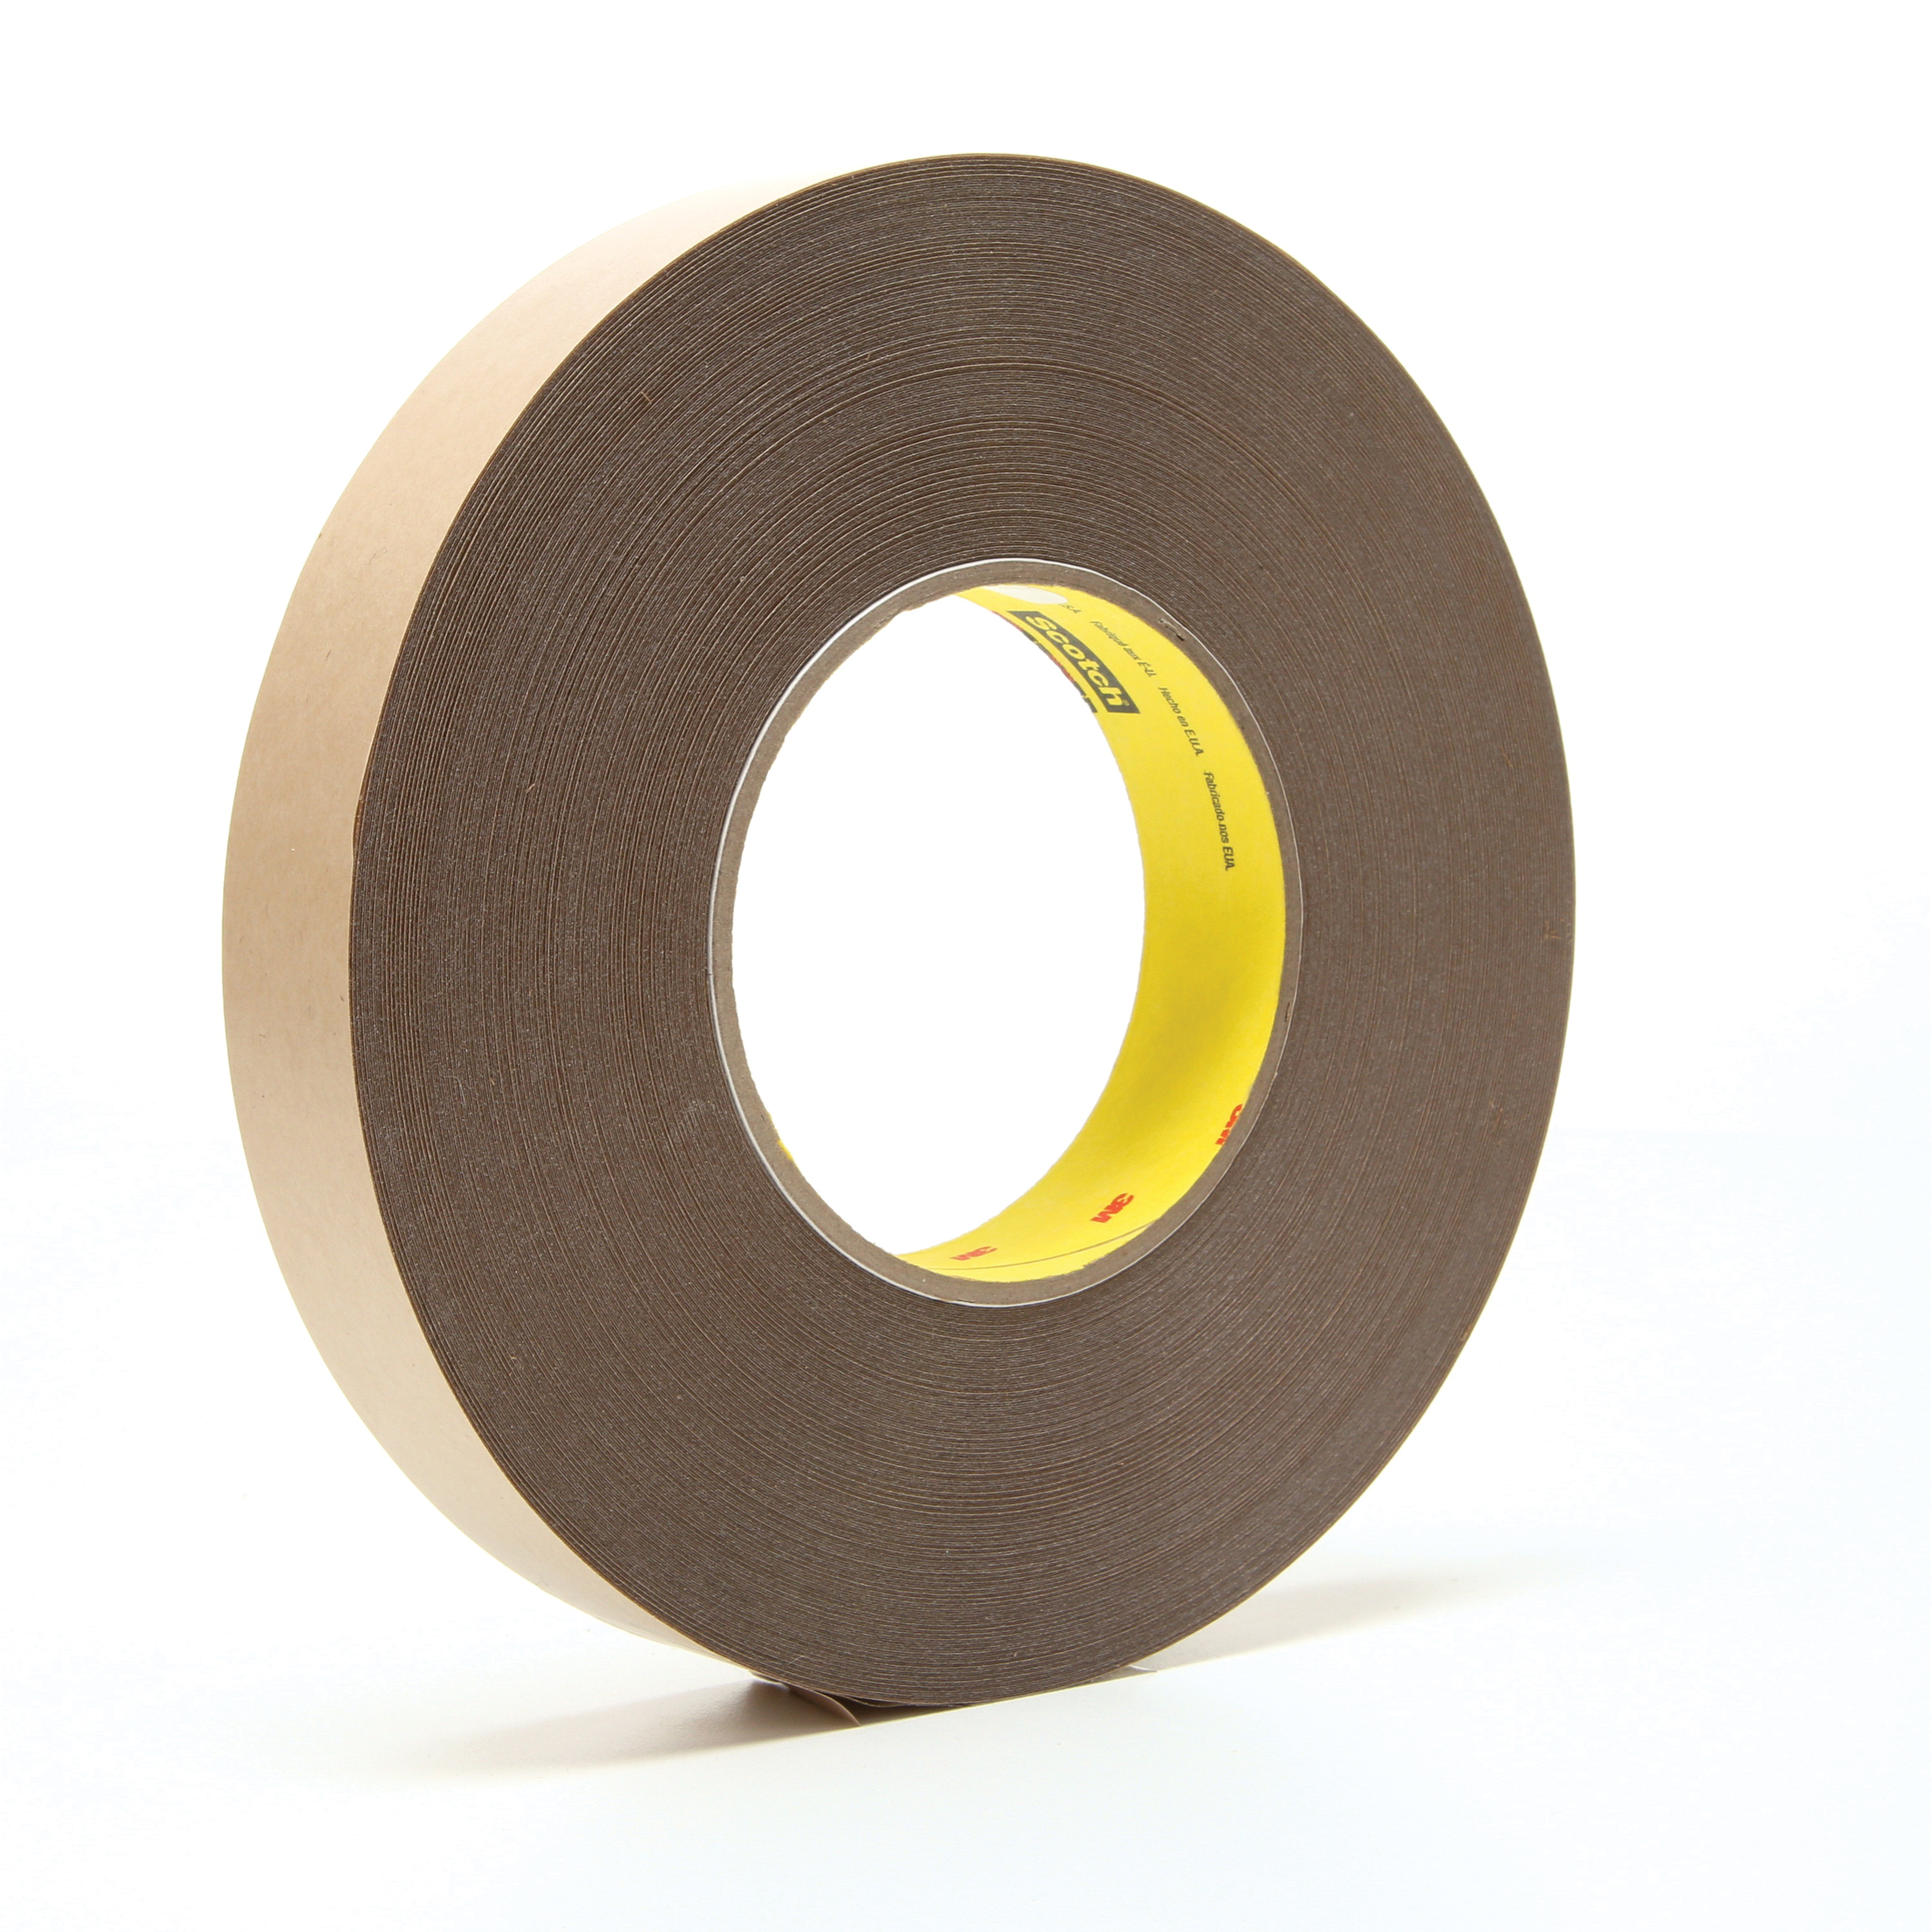 3M™ 021200-67708 Removable Double Coated Repositionable Tape, 72 yd L x 1 in W, 5.8 mil THK, Acrylic Adhesive, UPVC Backing, Clear